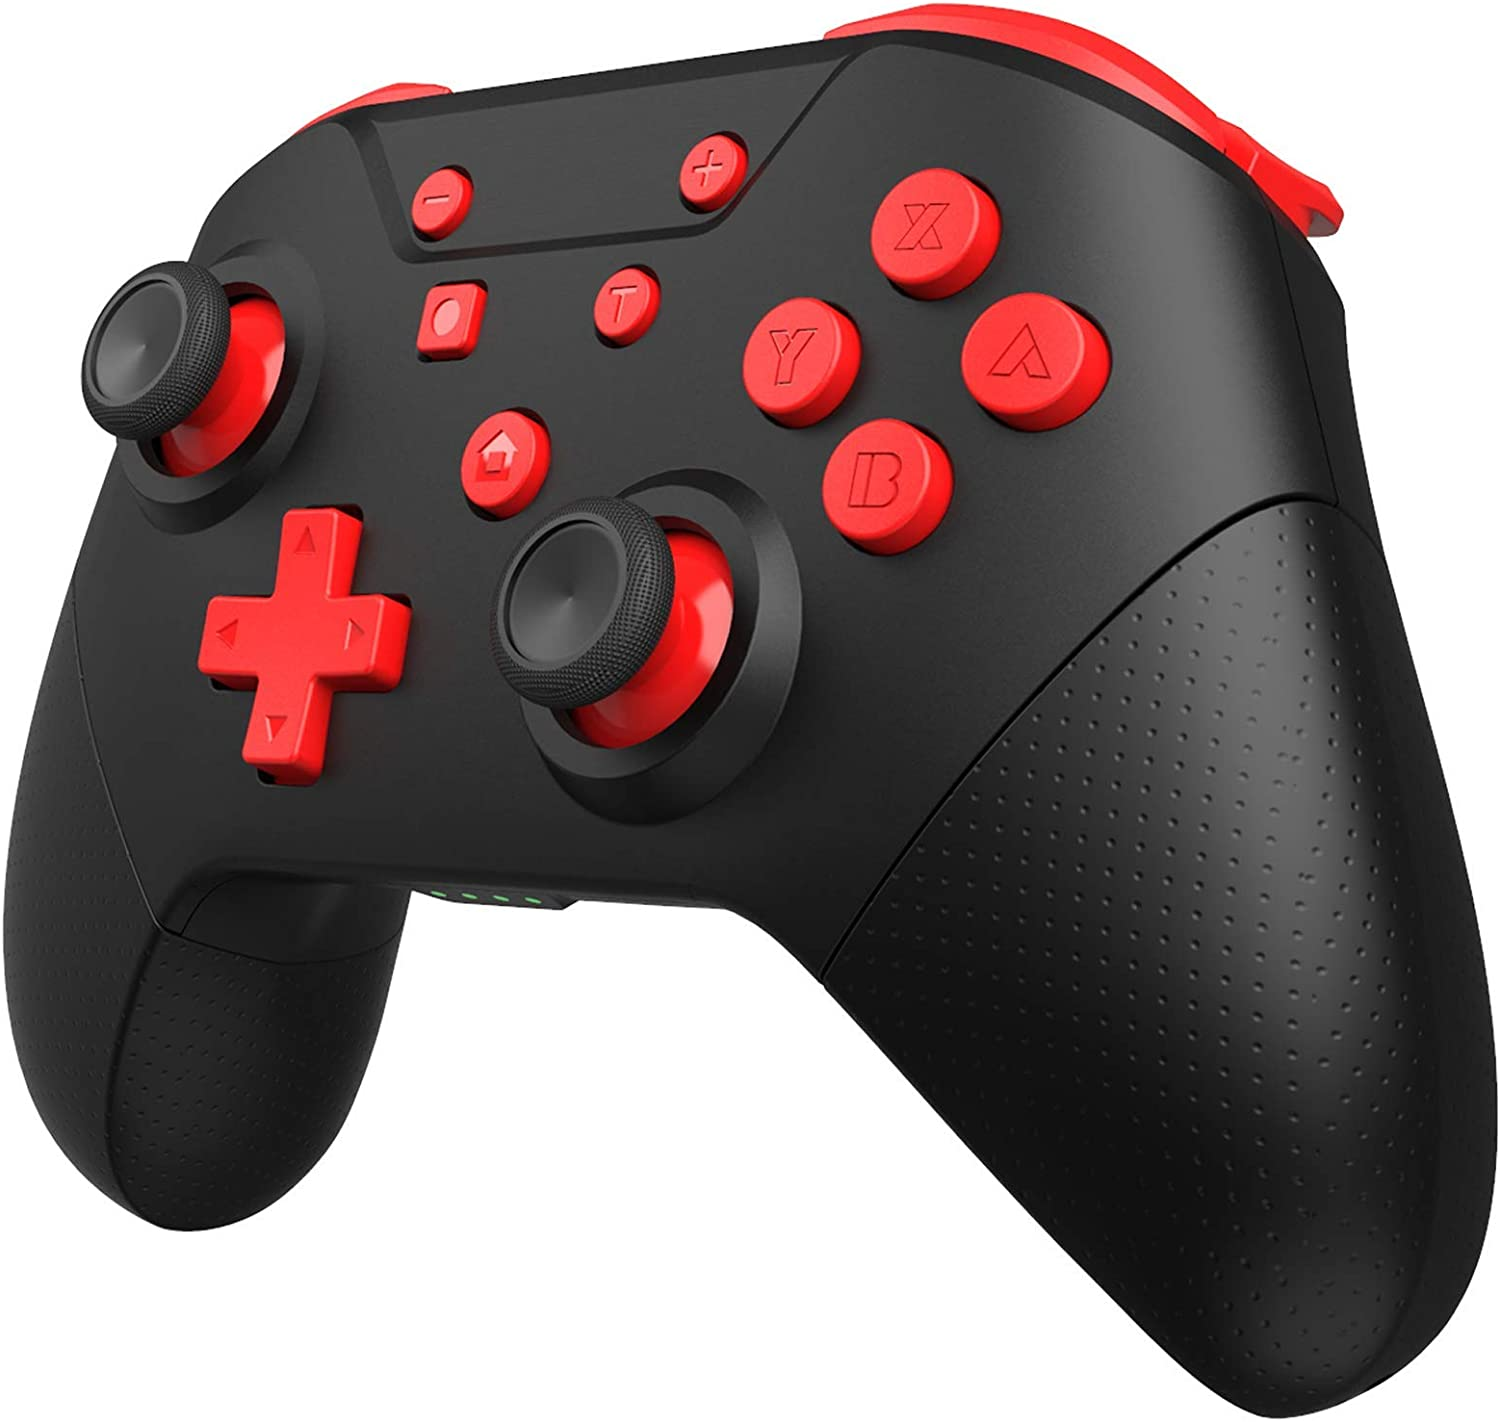 GCHT GAMING Switch Pro Controller for Nintendo Switch/Switch Lite with Wake Up, NFC, Turbo, Gyro Axis, Dual Shock (Black Rad)